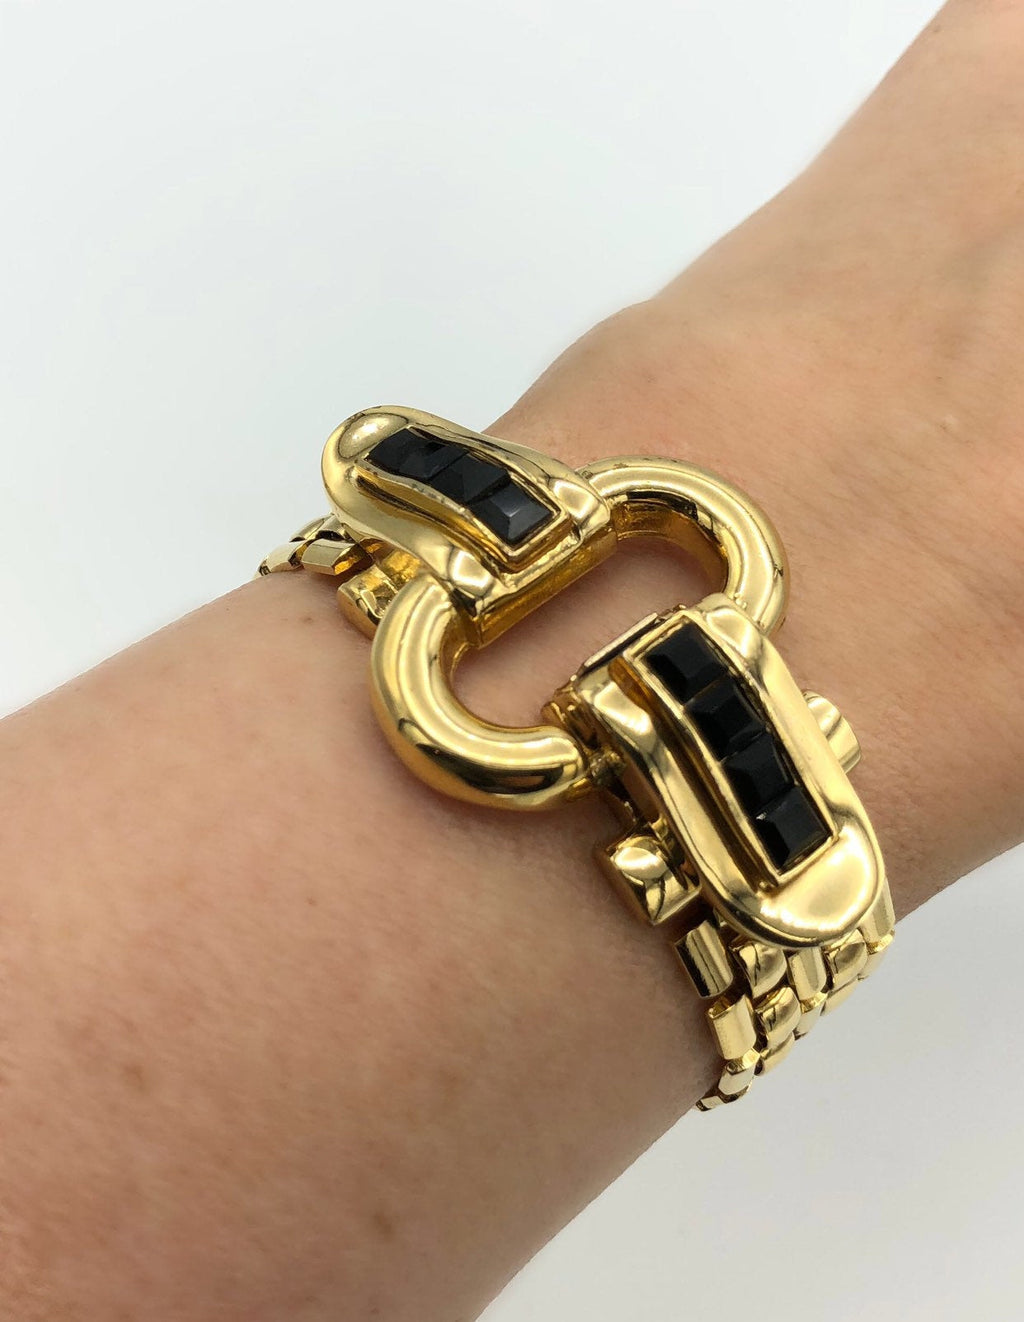 Givenchy Art Deco Style Gold Vintage Bracelet-Sustainable Fashion with Vintage Style-Trending Designer Fashion-24 Wishes